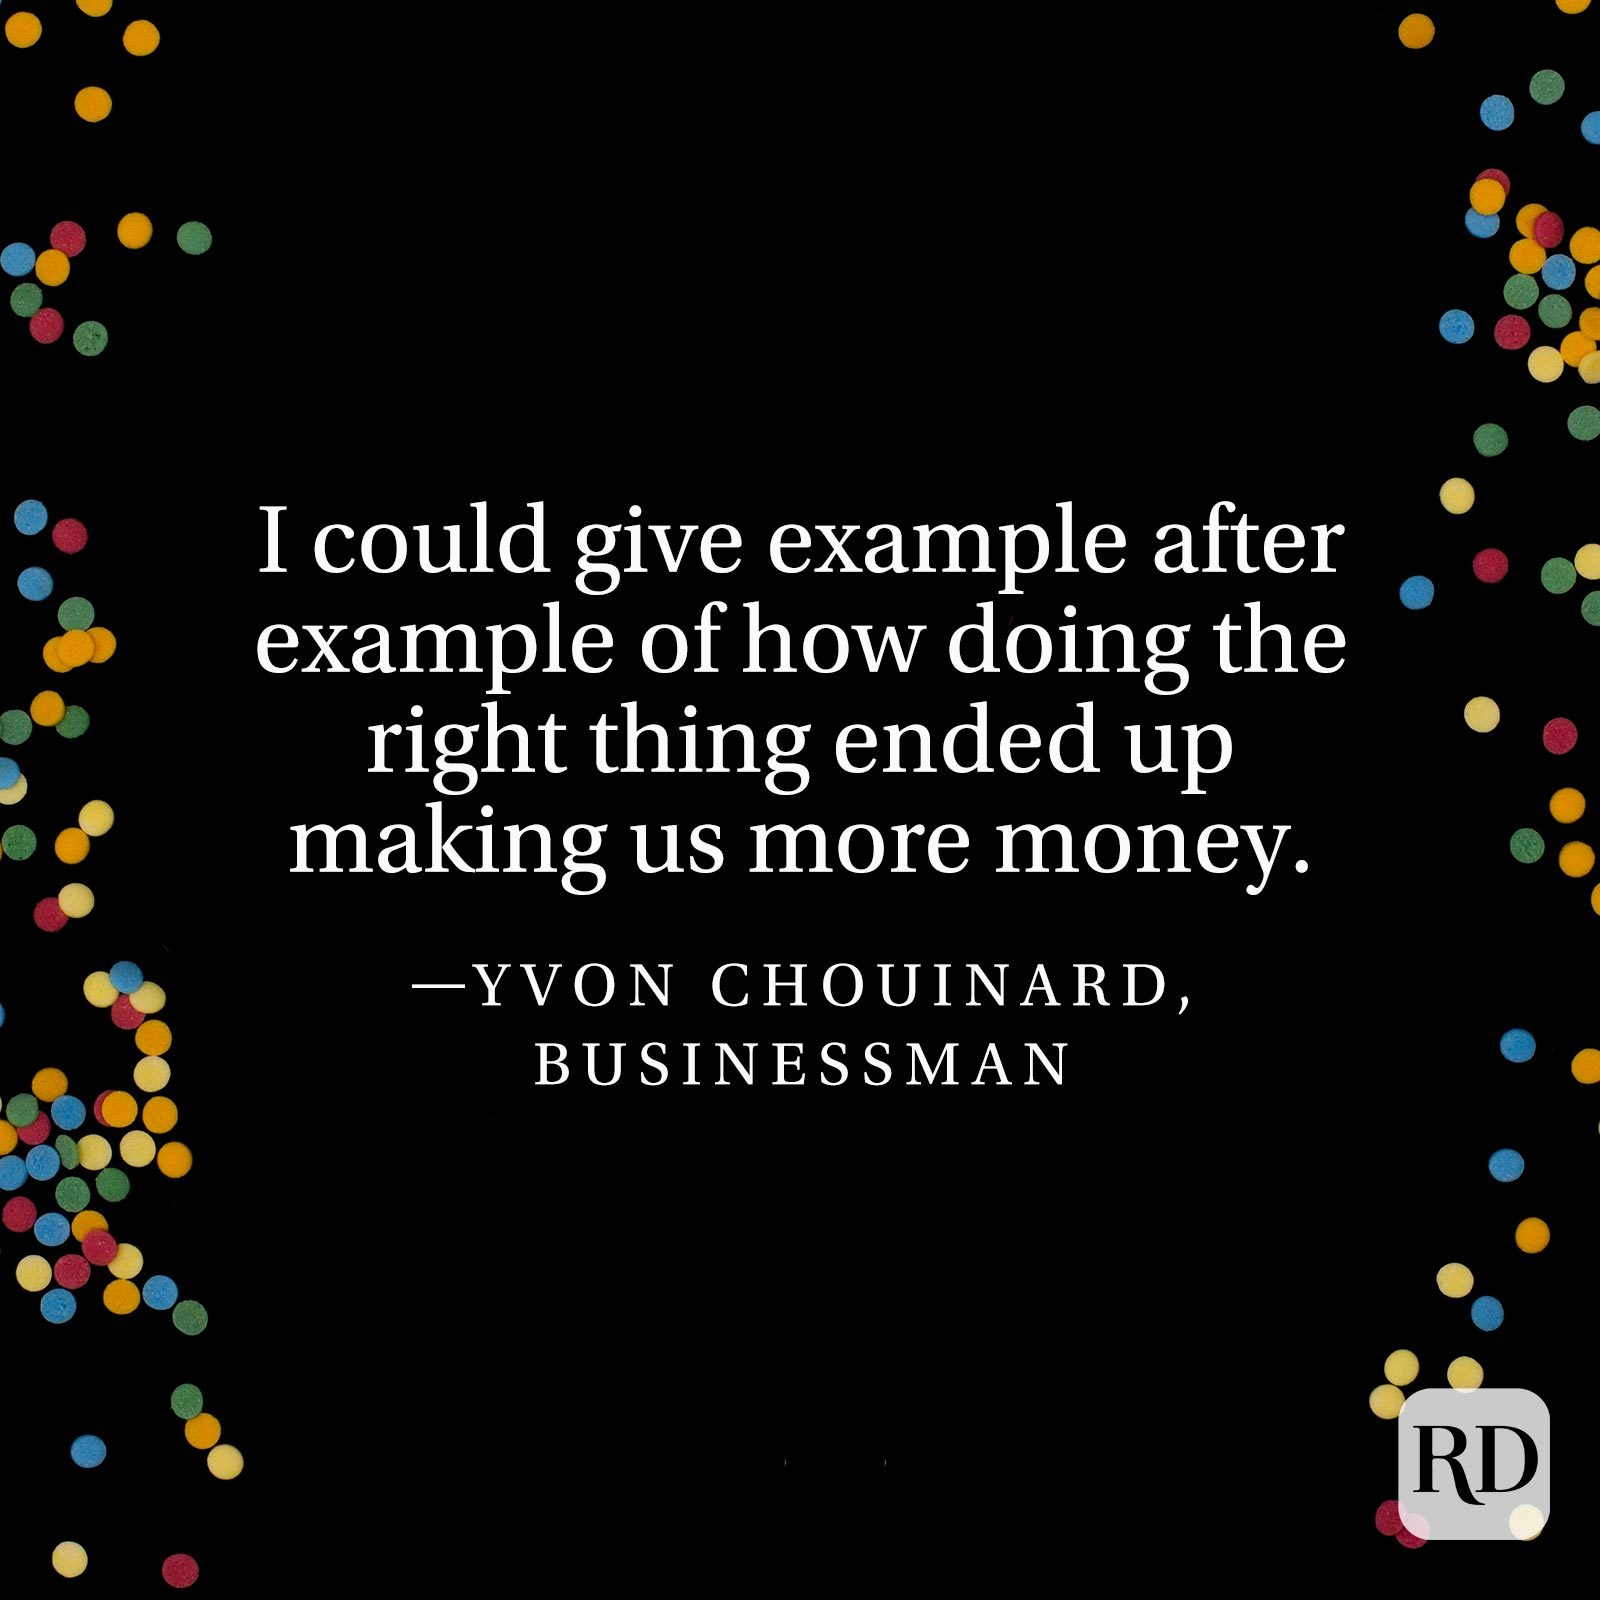 """I could give example after example of how doing the right thing ended up making us more money."" —Yvon Chouinard, businessman"